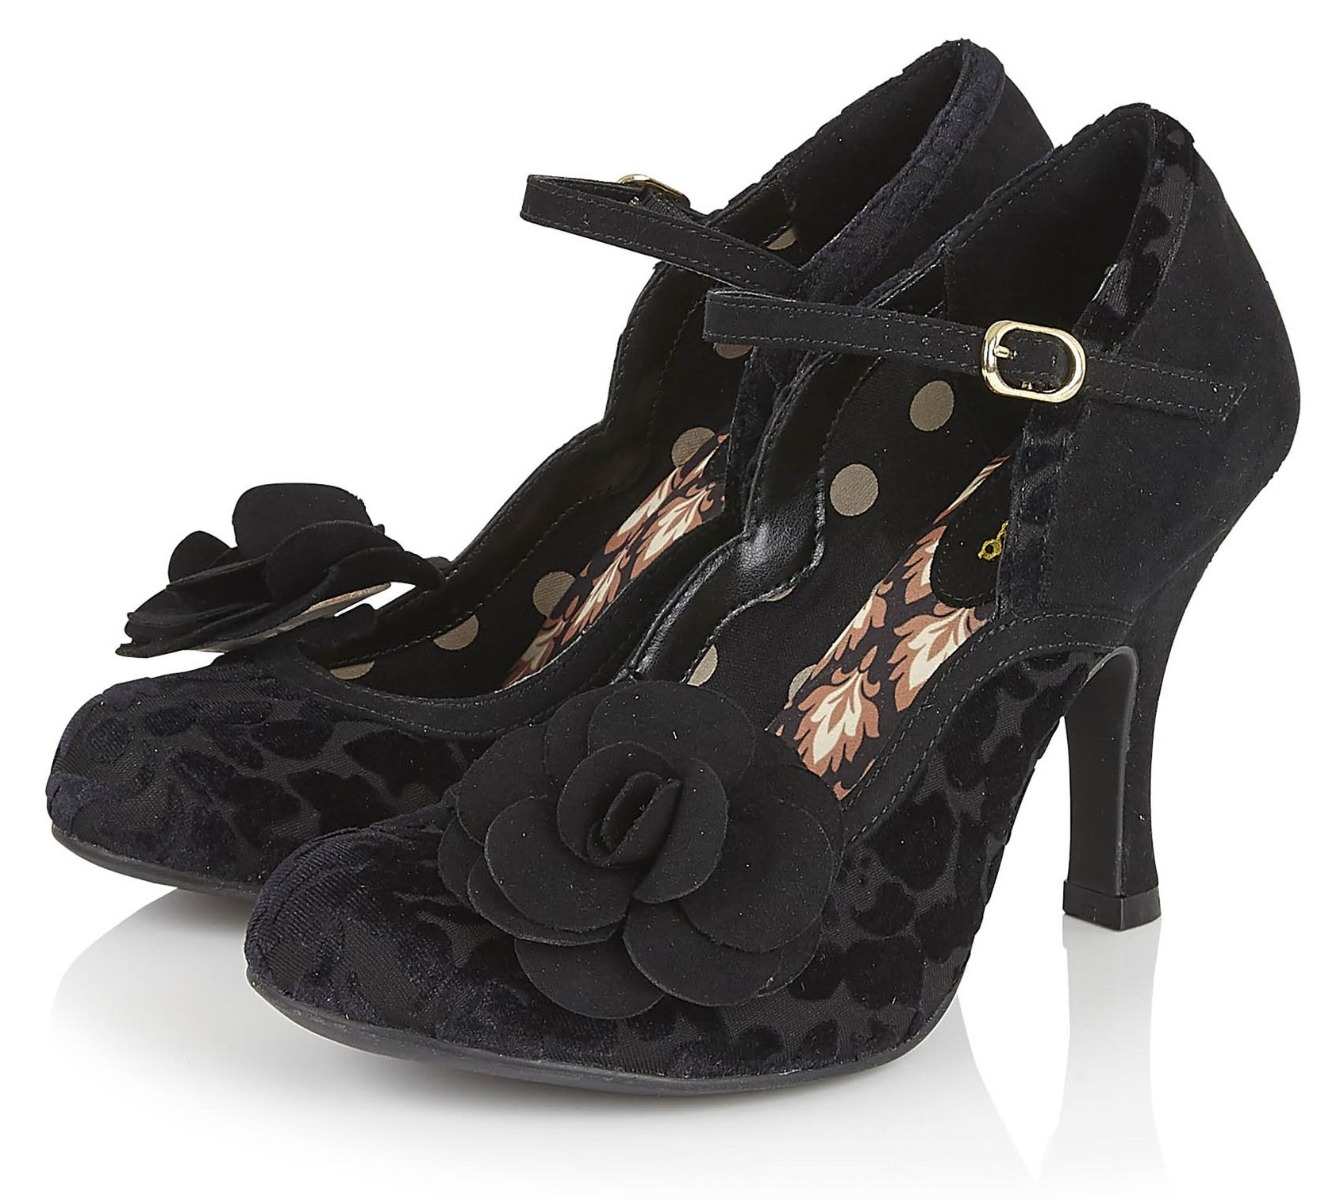 rs09343_chaussures-escarpins-pin-up-retro-50-s-glam-chic-beatrice-noir